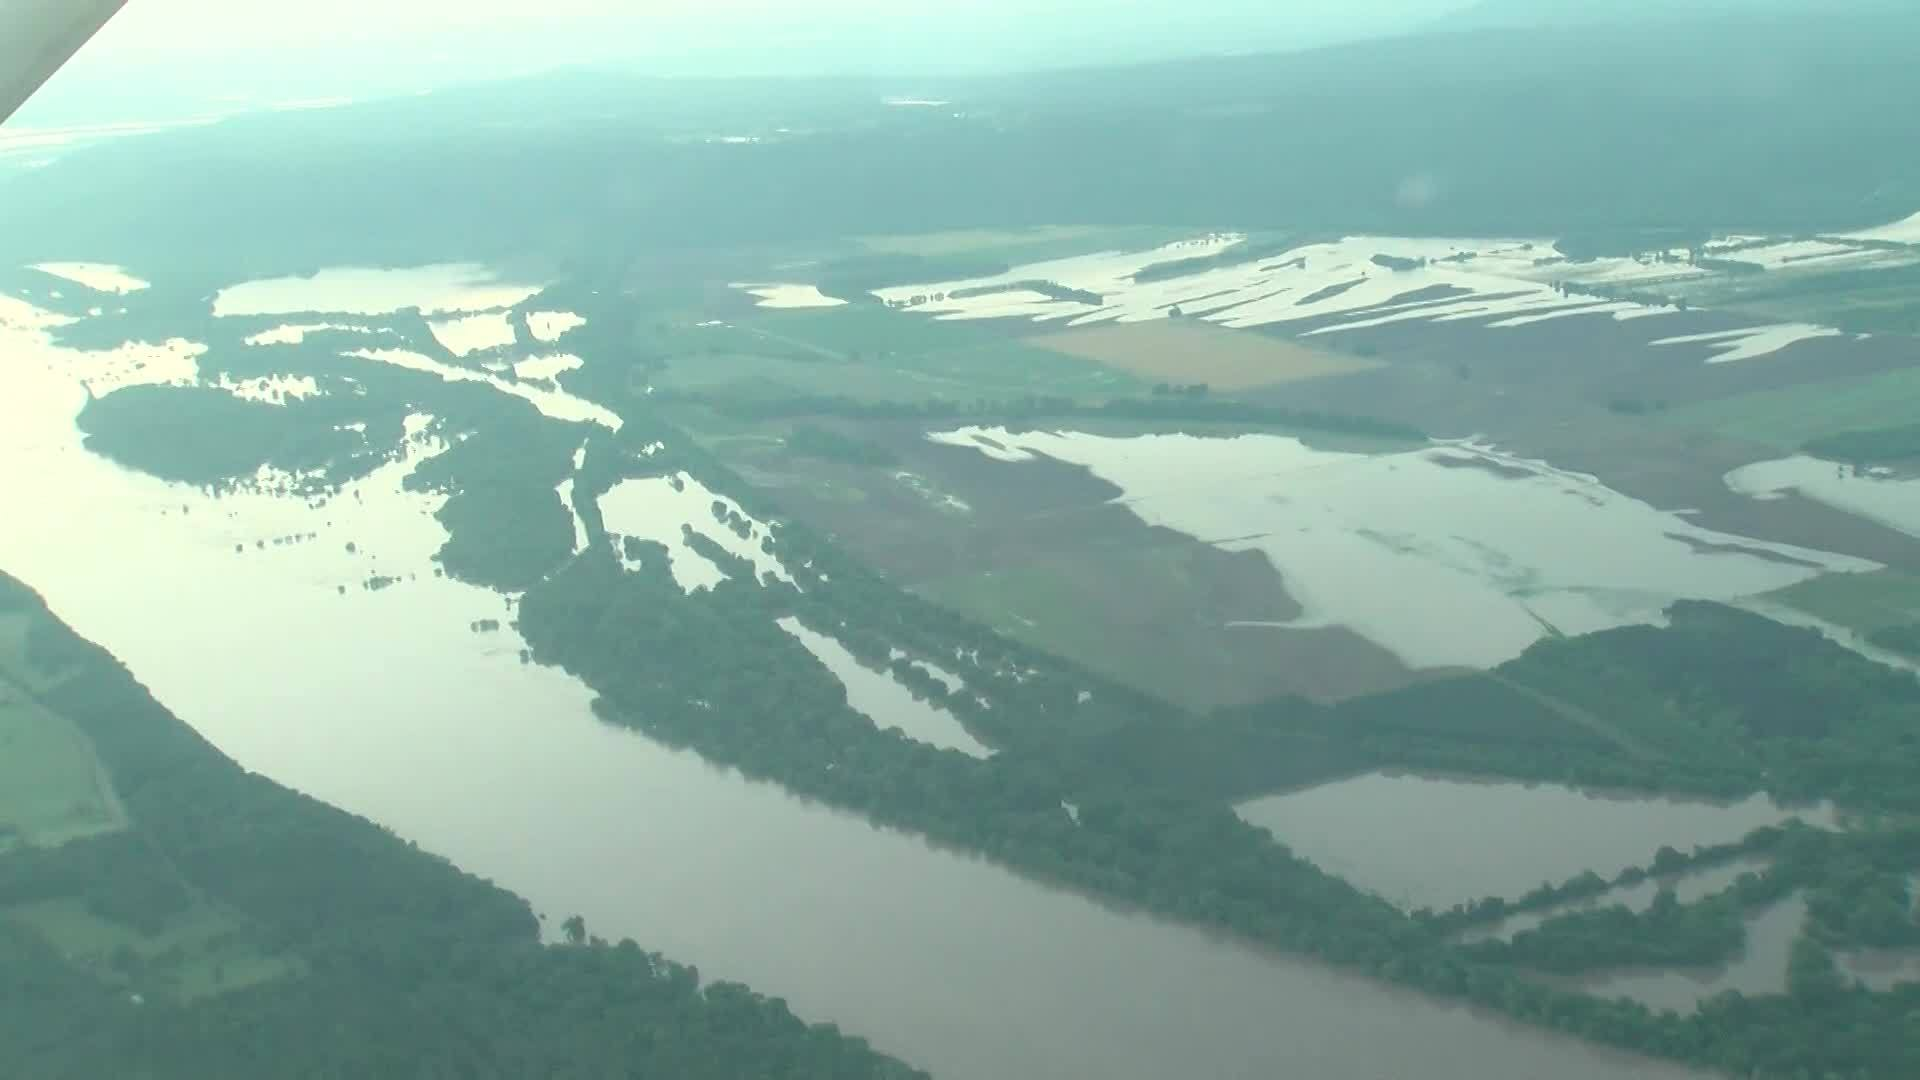 May_31_flooding_aerials___Yell_County_1_20190531154524